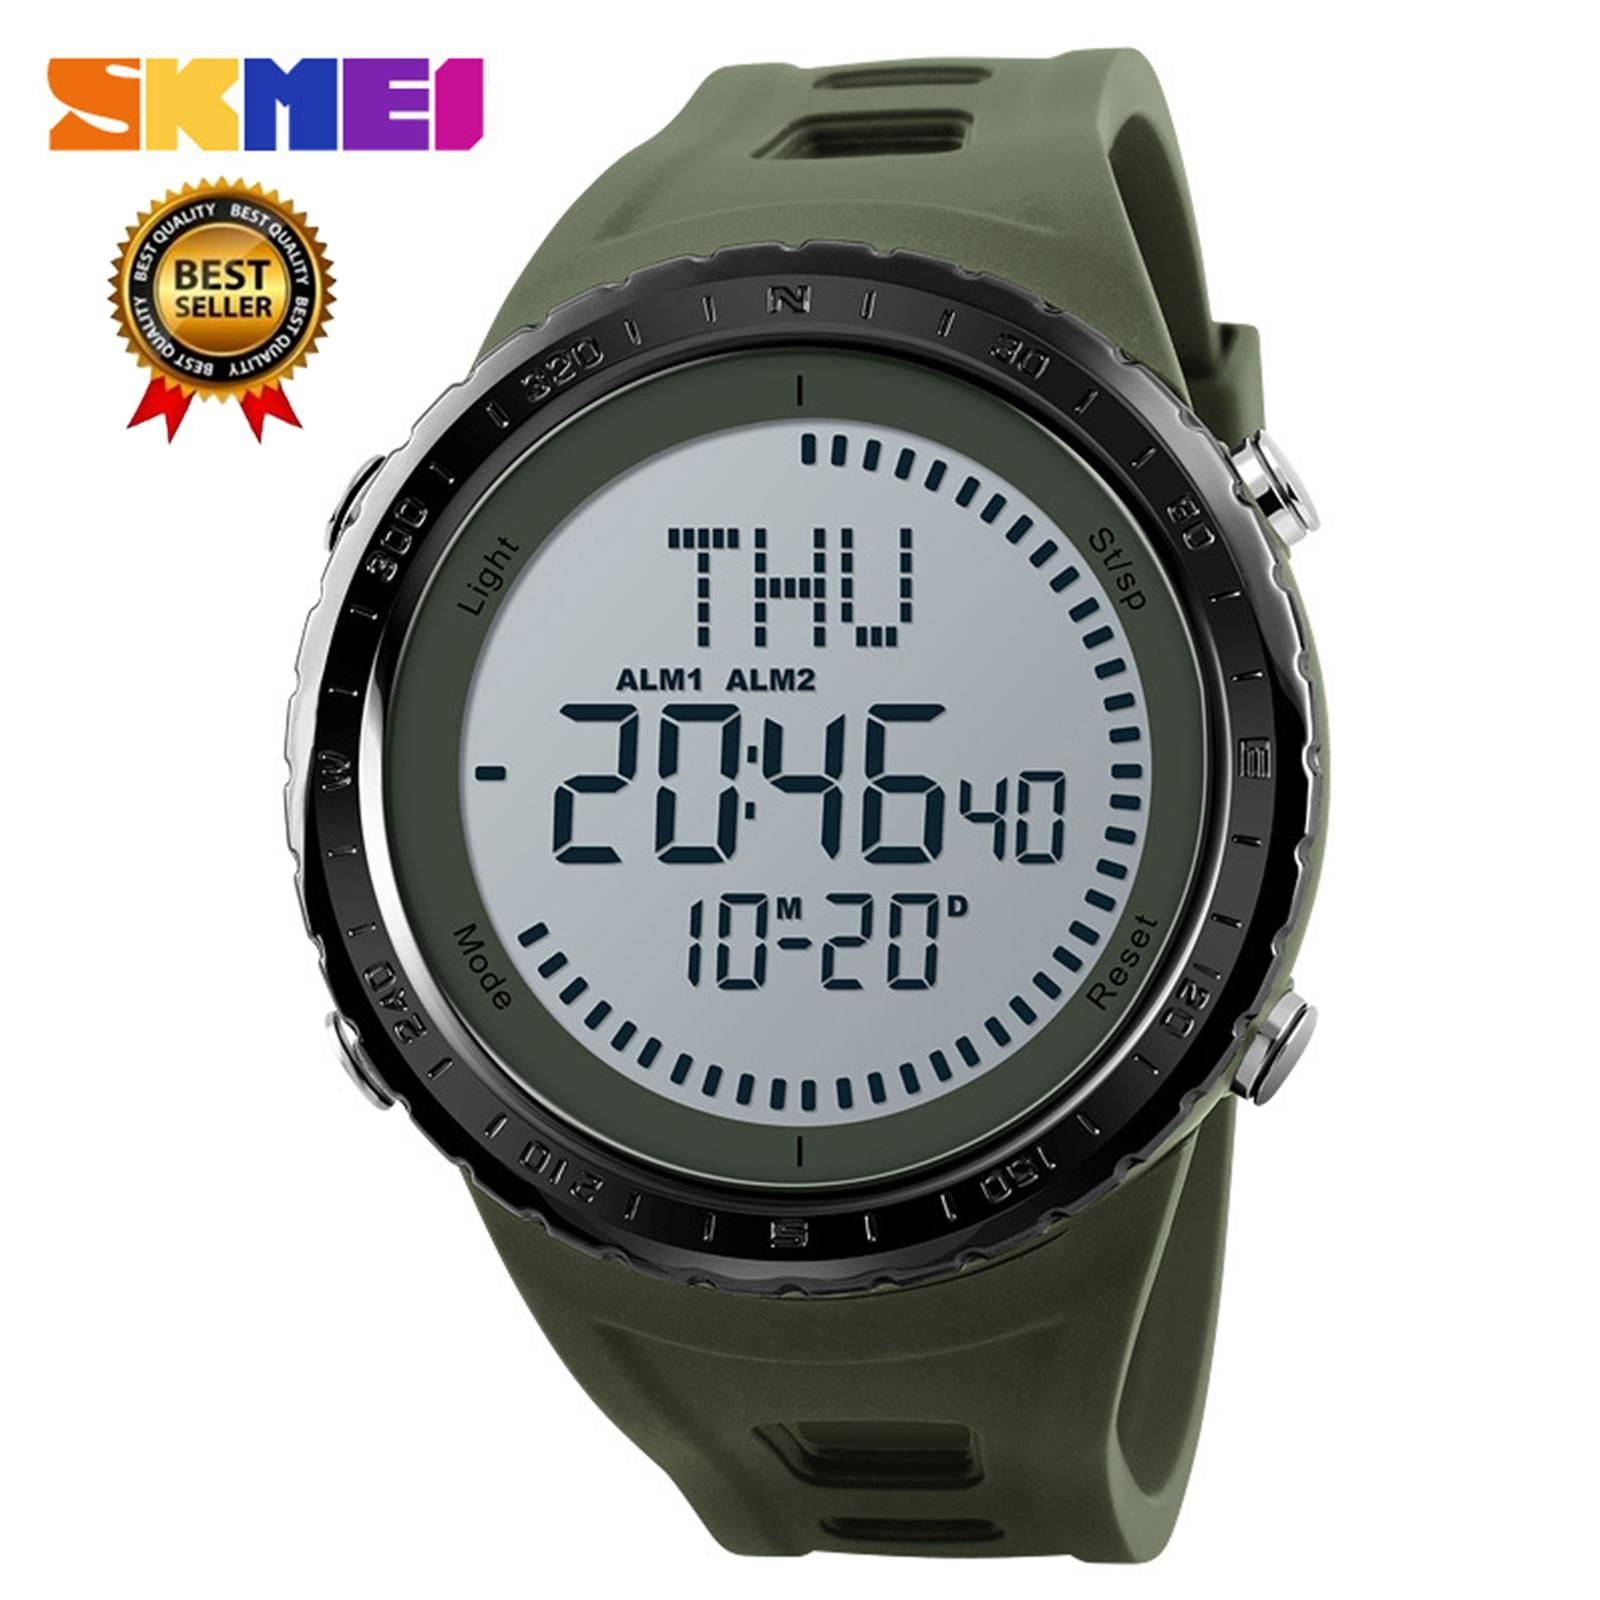 19b247764bb0e Skmei 2018 SKMEI NEW Compass Watch Men Sports Watches Outdoor Waterproof  Countdown Chronograph Digital Wristwatches Relogio Masculino 1342